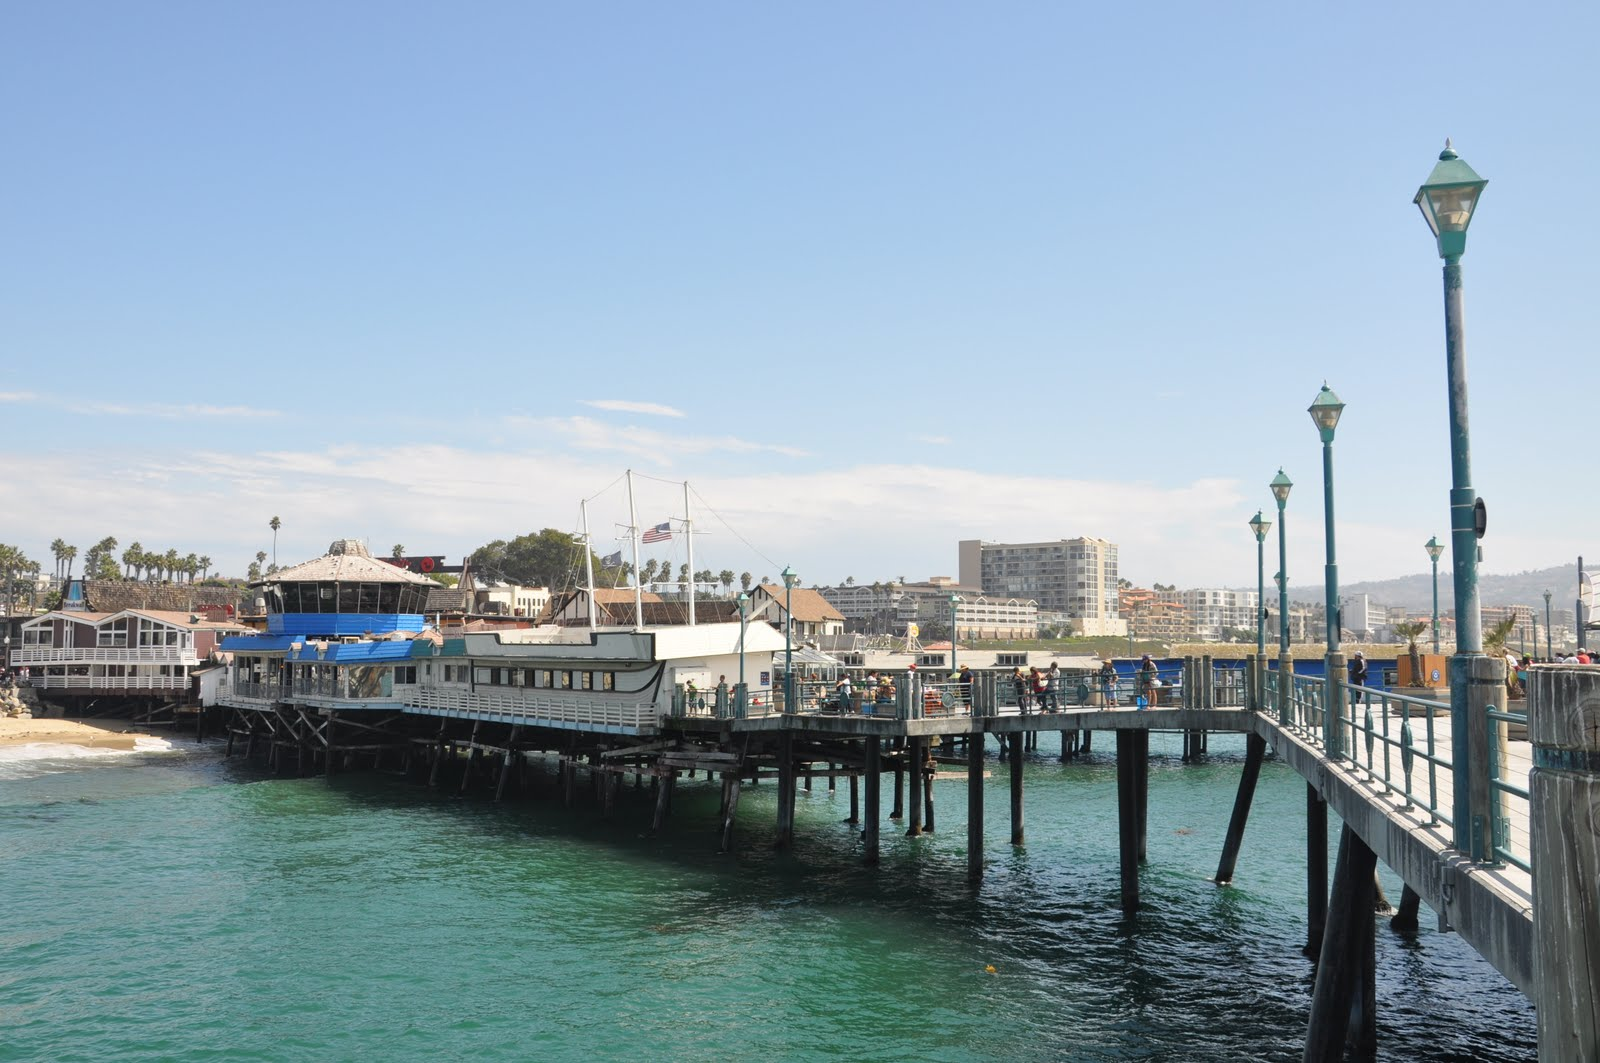 Labor day in la feathers too bright for Redondo beach pier fishing